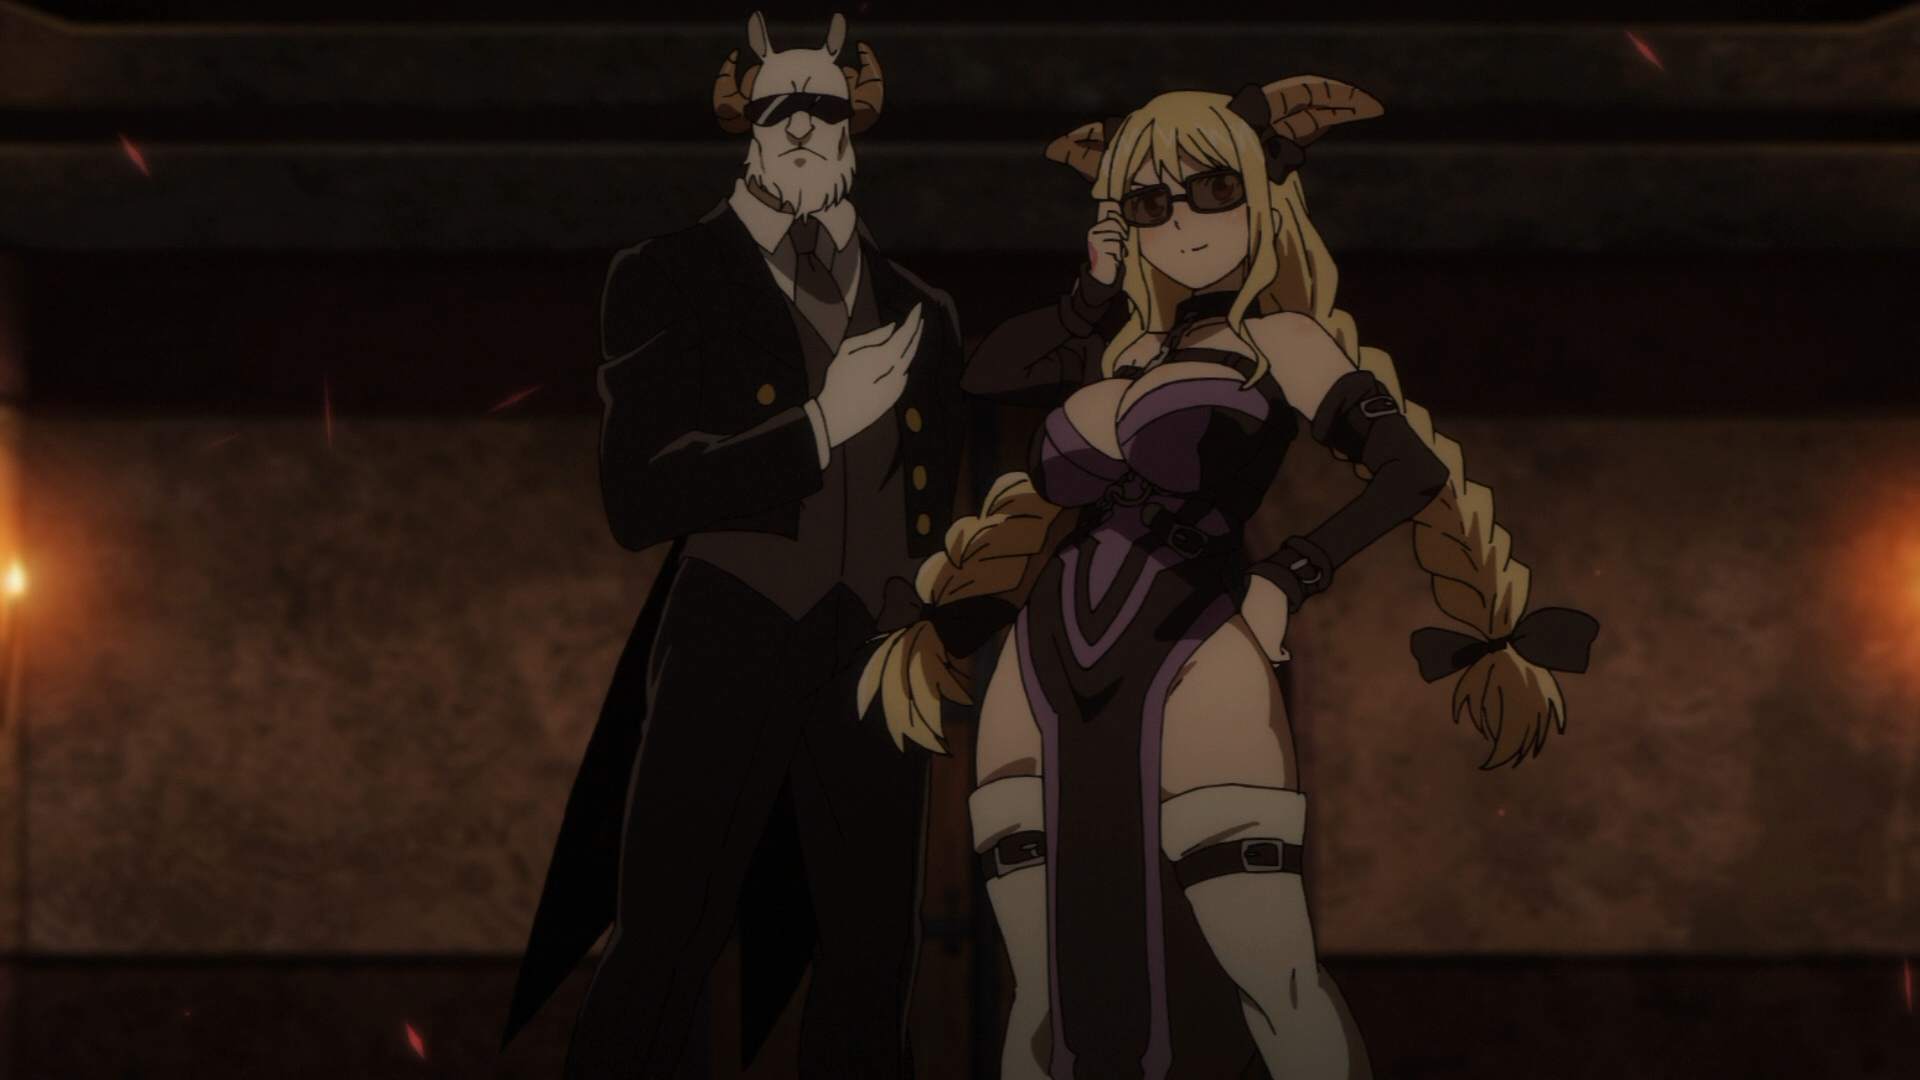 Fairy Tail Dragon Crymovie 2 Fanservice Review  Fapservice-7532